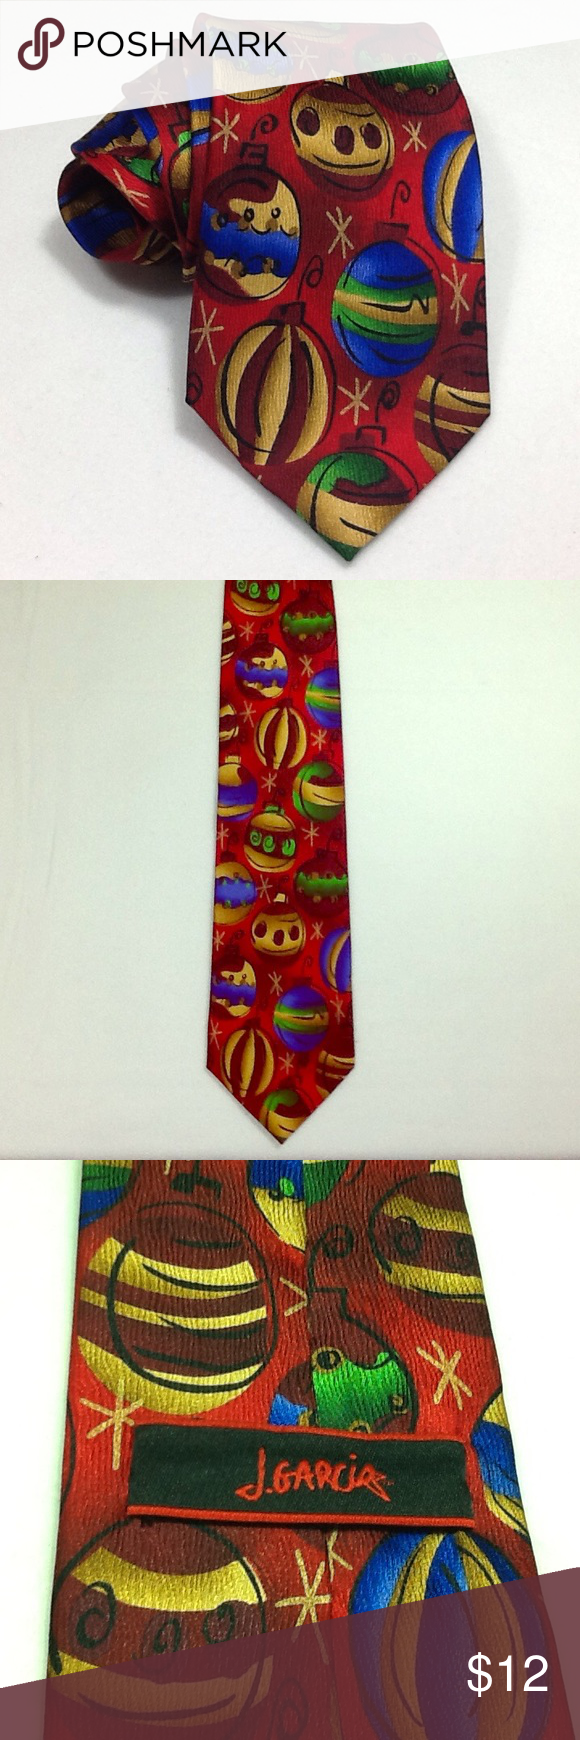 Jerry Garcia Christmas tie Excellent pre-owned condition. Red with ...